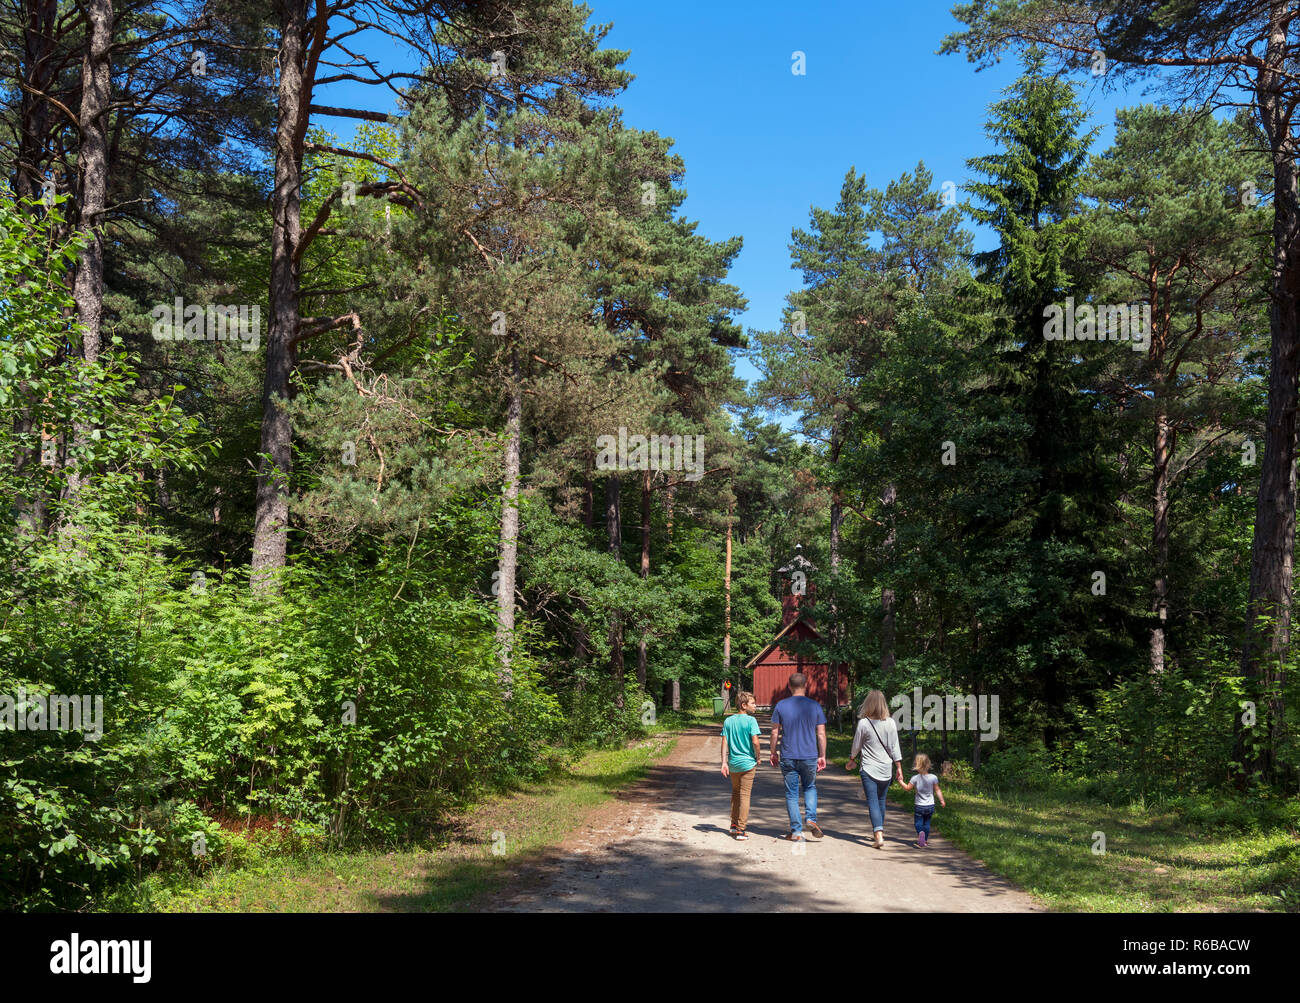 Family walking through the Estonian Open Air Museum near the Fire Station,Tallinn, Estonia - Stock Image